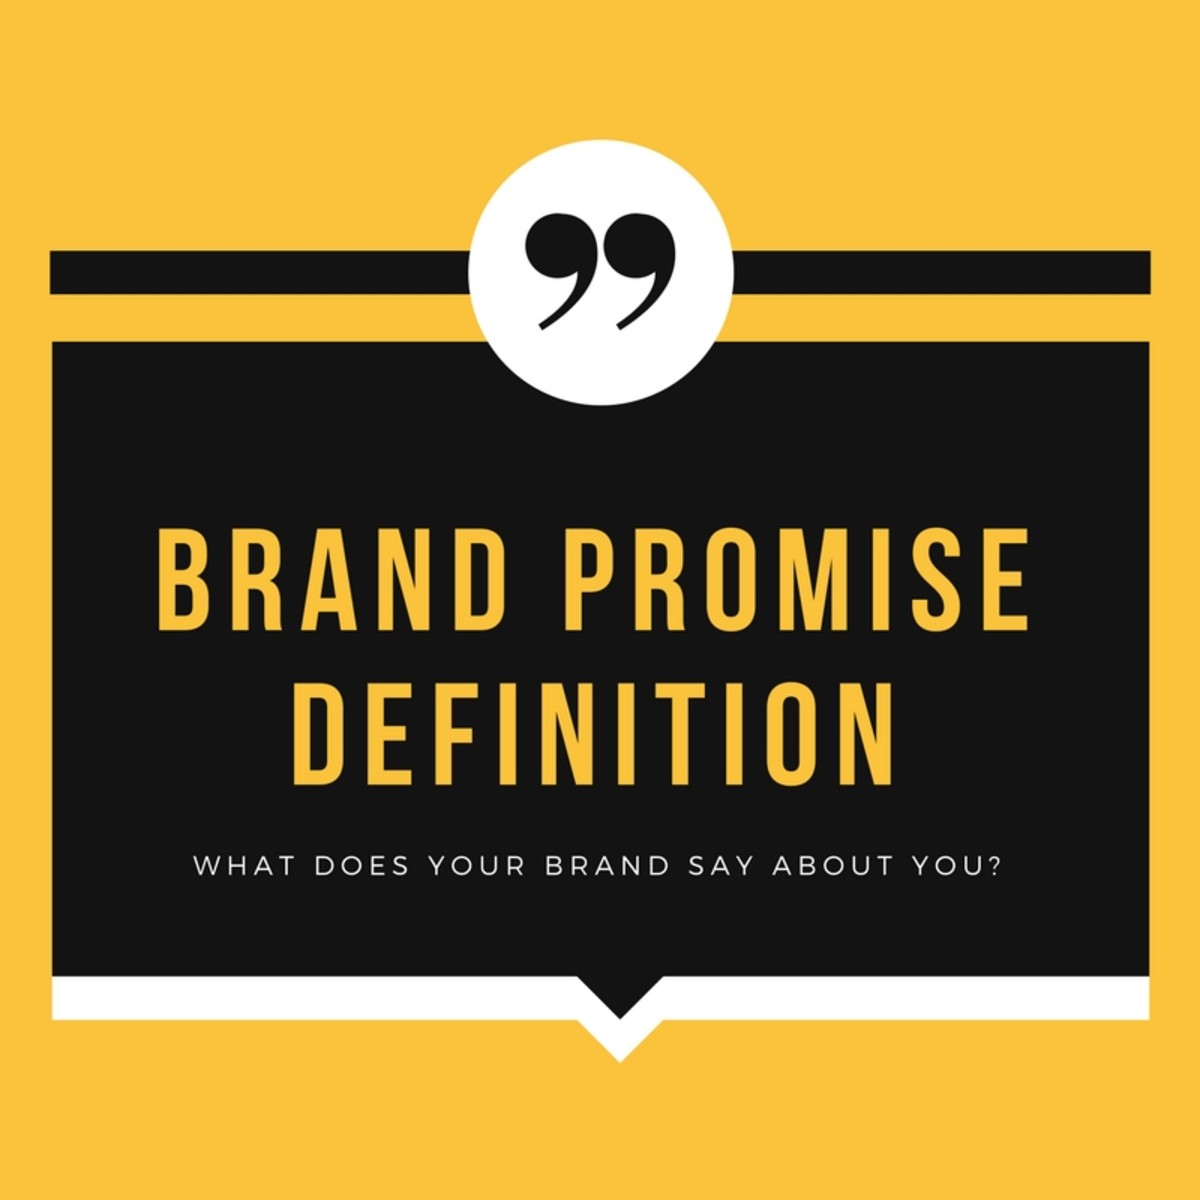 Brand Promise Definition